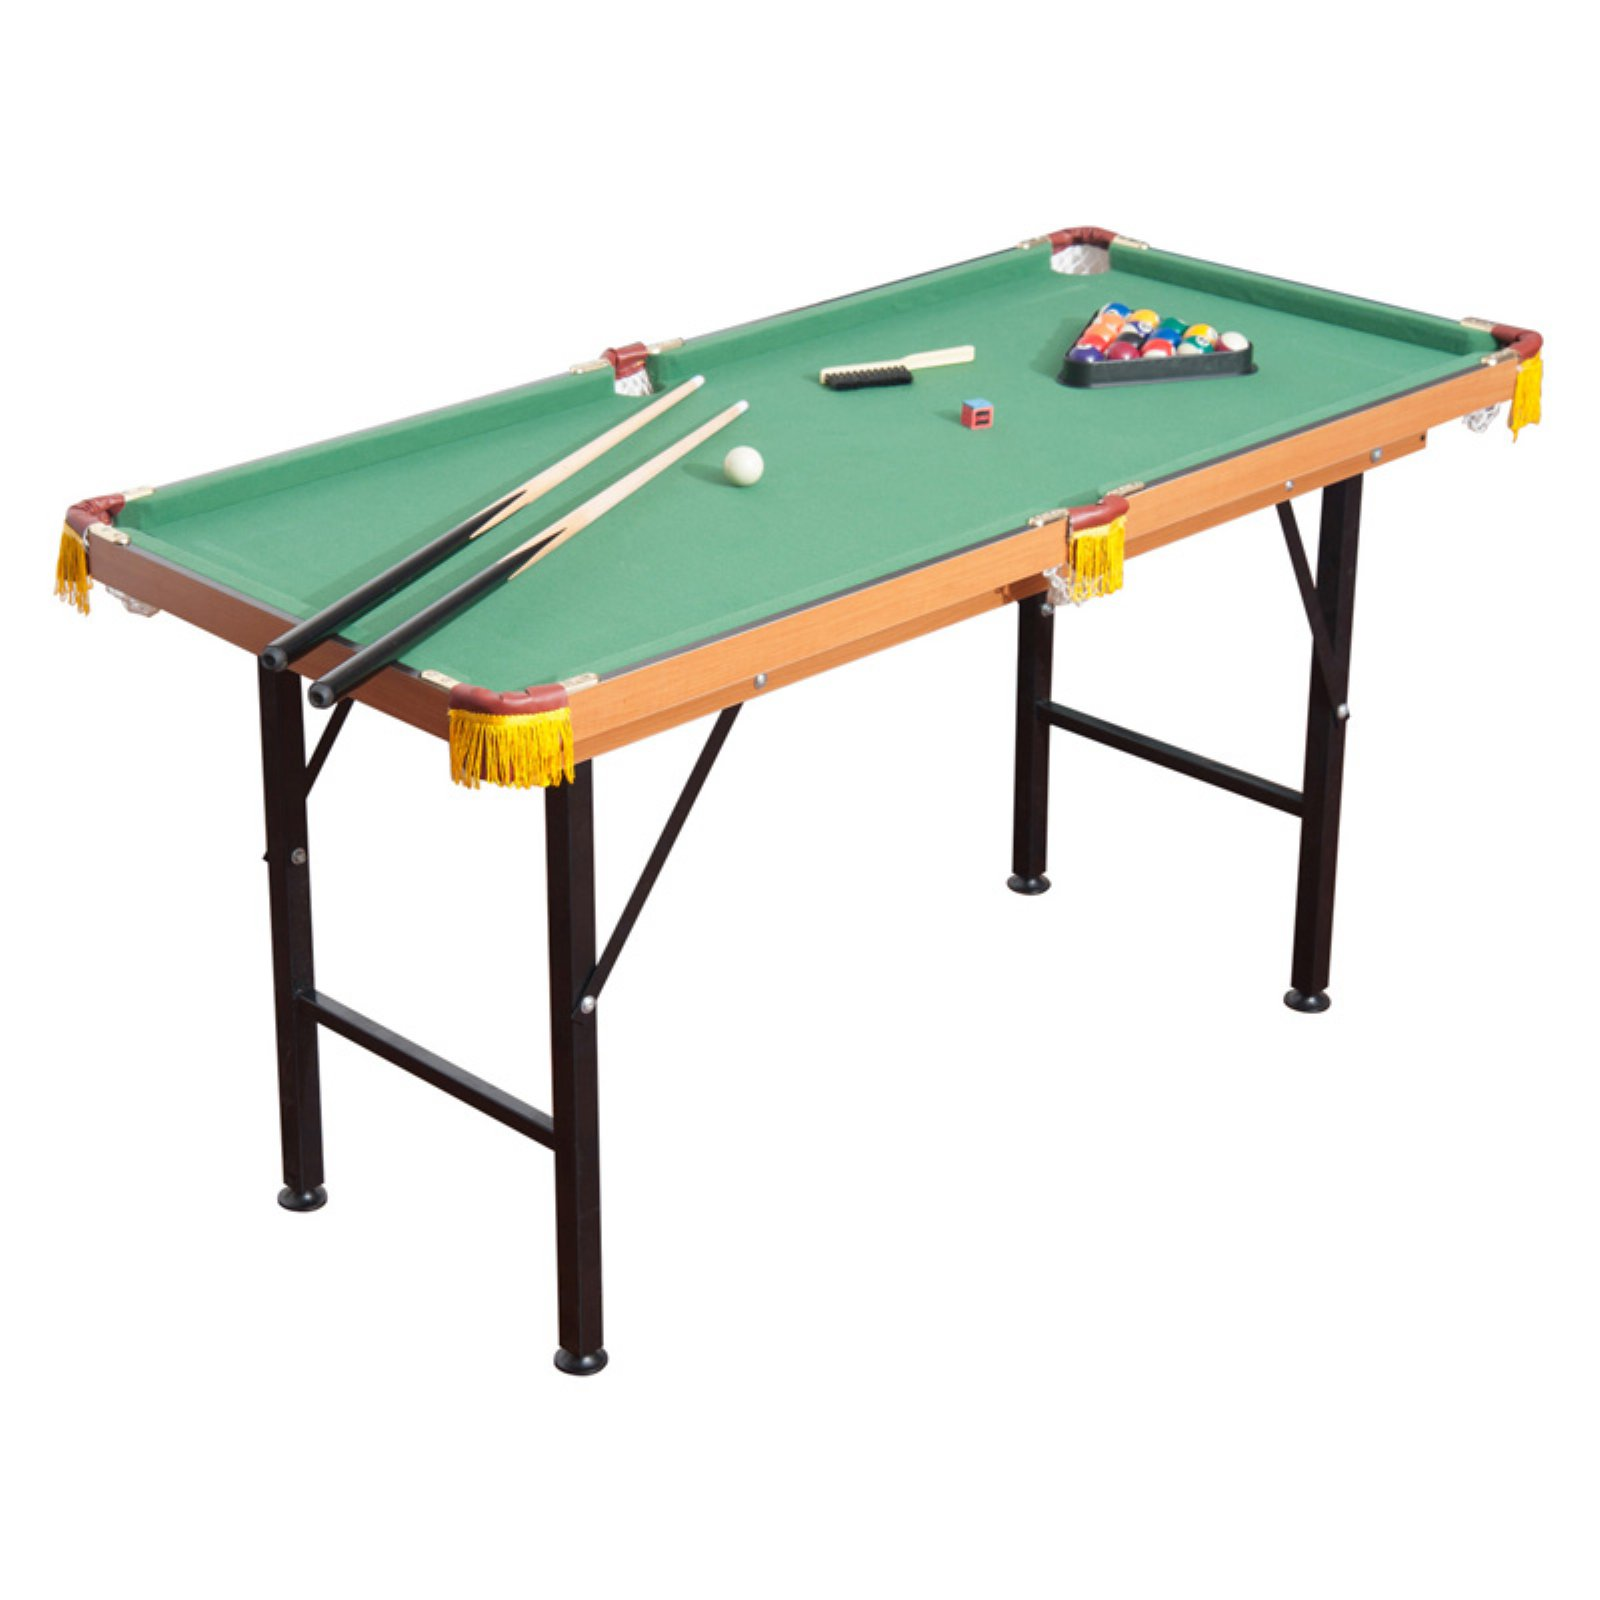 HomCom Folding Miniature Billiards Pool Table